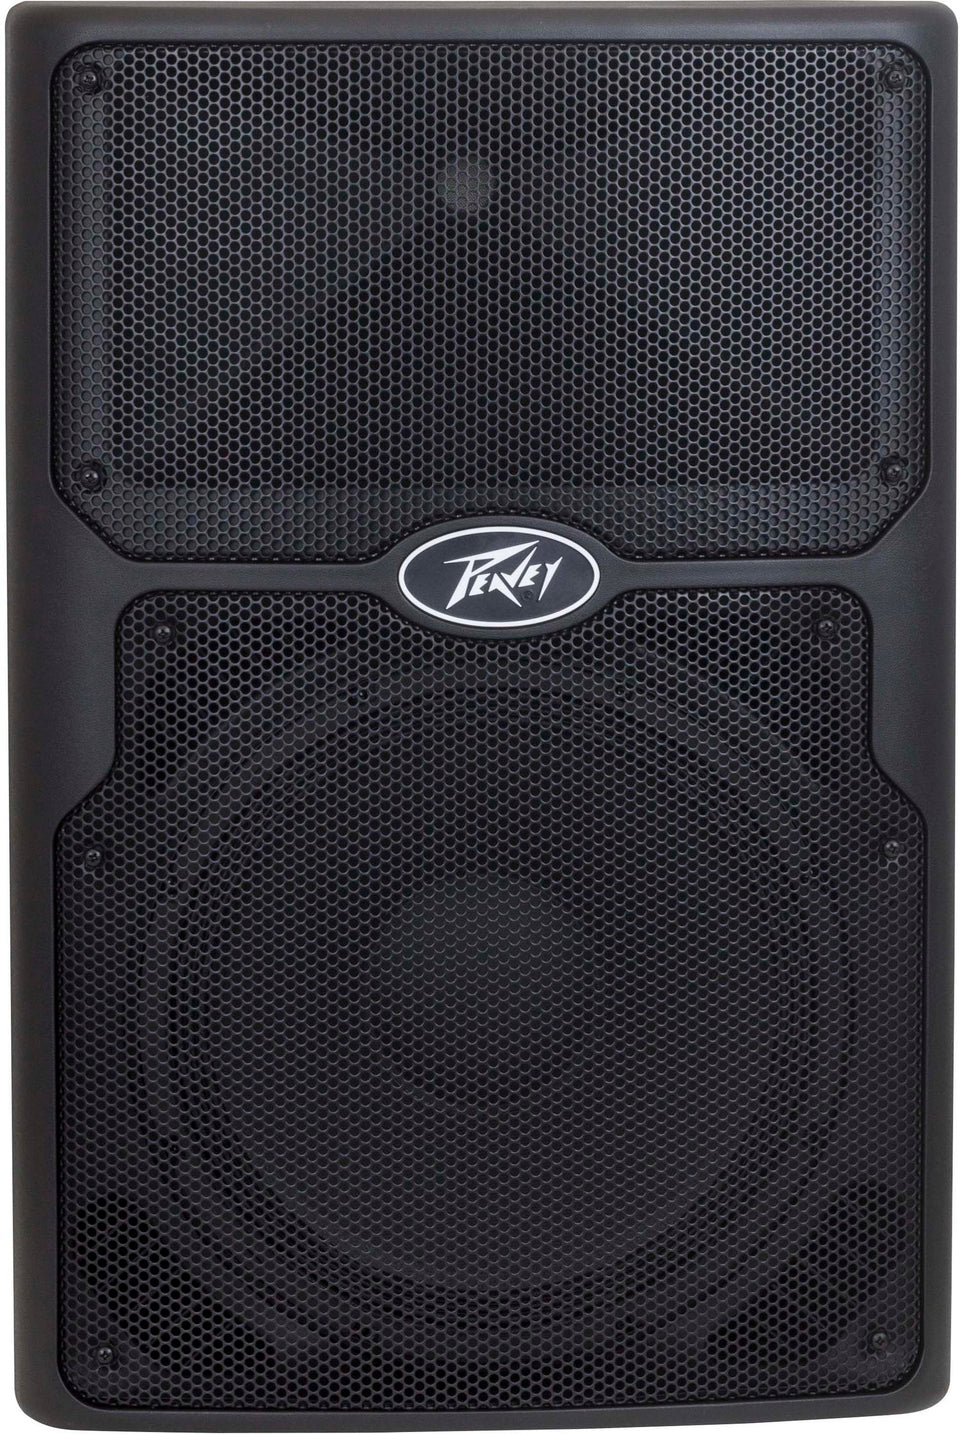 Peavey PVXp 12DSP 800W Powered Speaker